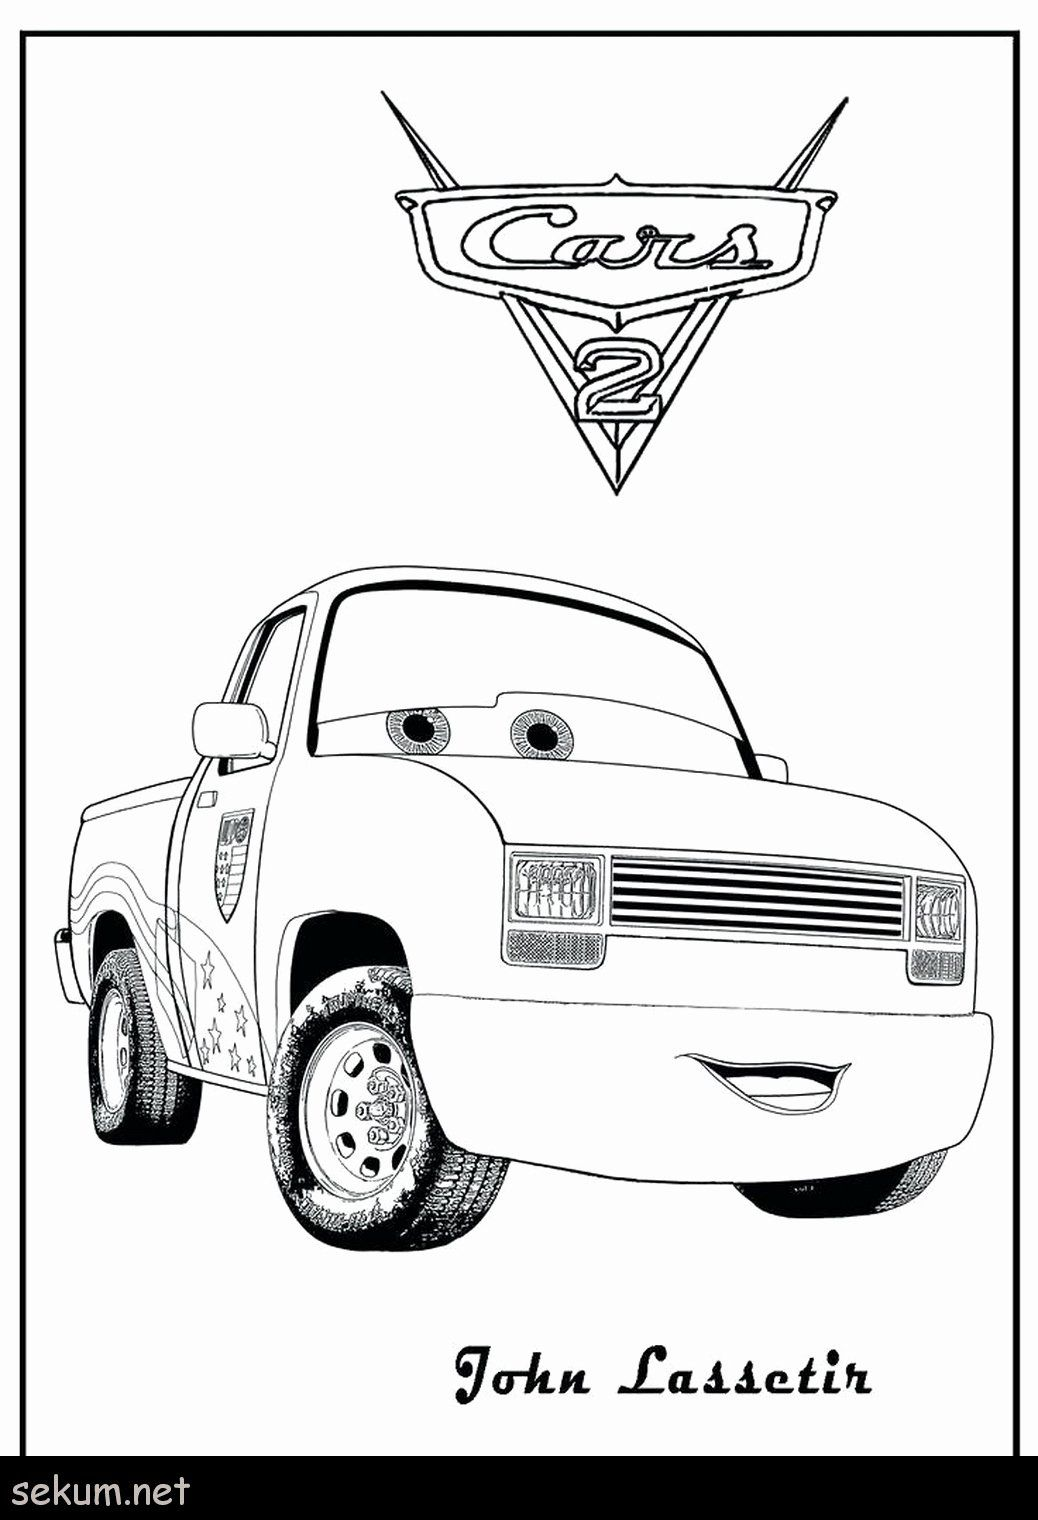 Lightning Mcqueen Christmas Coloring Pages Awesome Coloring Pages Printable Lightning Mcqueen Coloring Cars Coloring Pages Disney Coloring Pages Coloring Pages